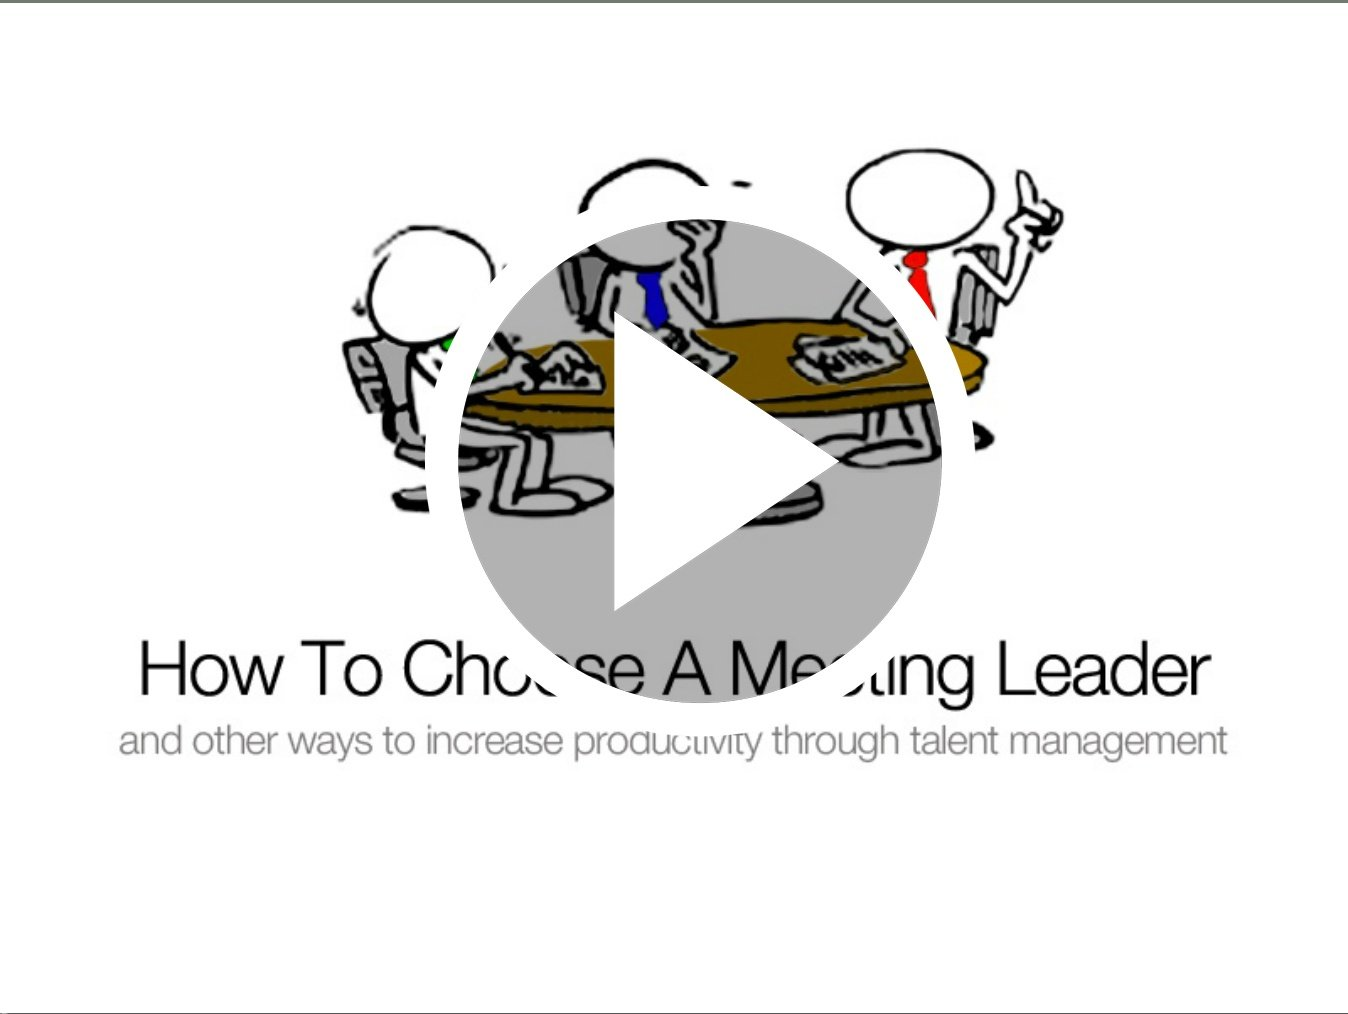 How to choose a meeting leader